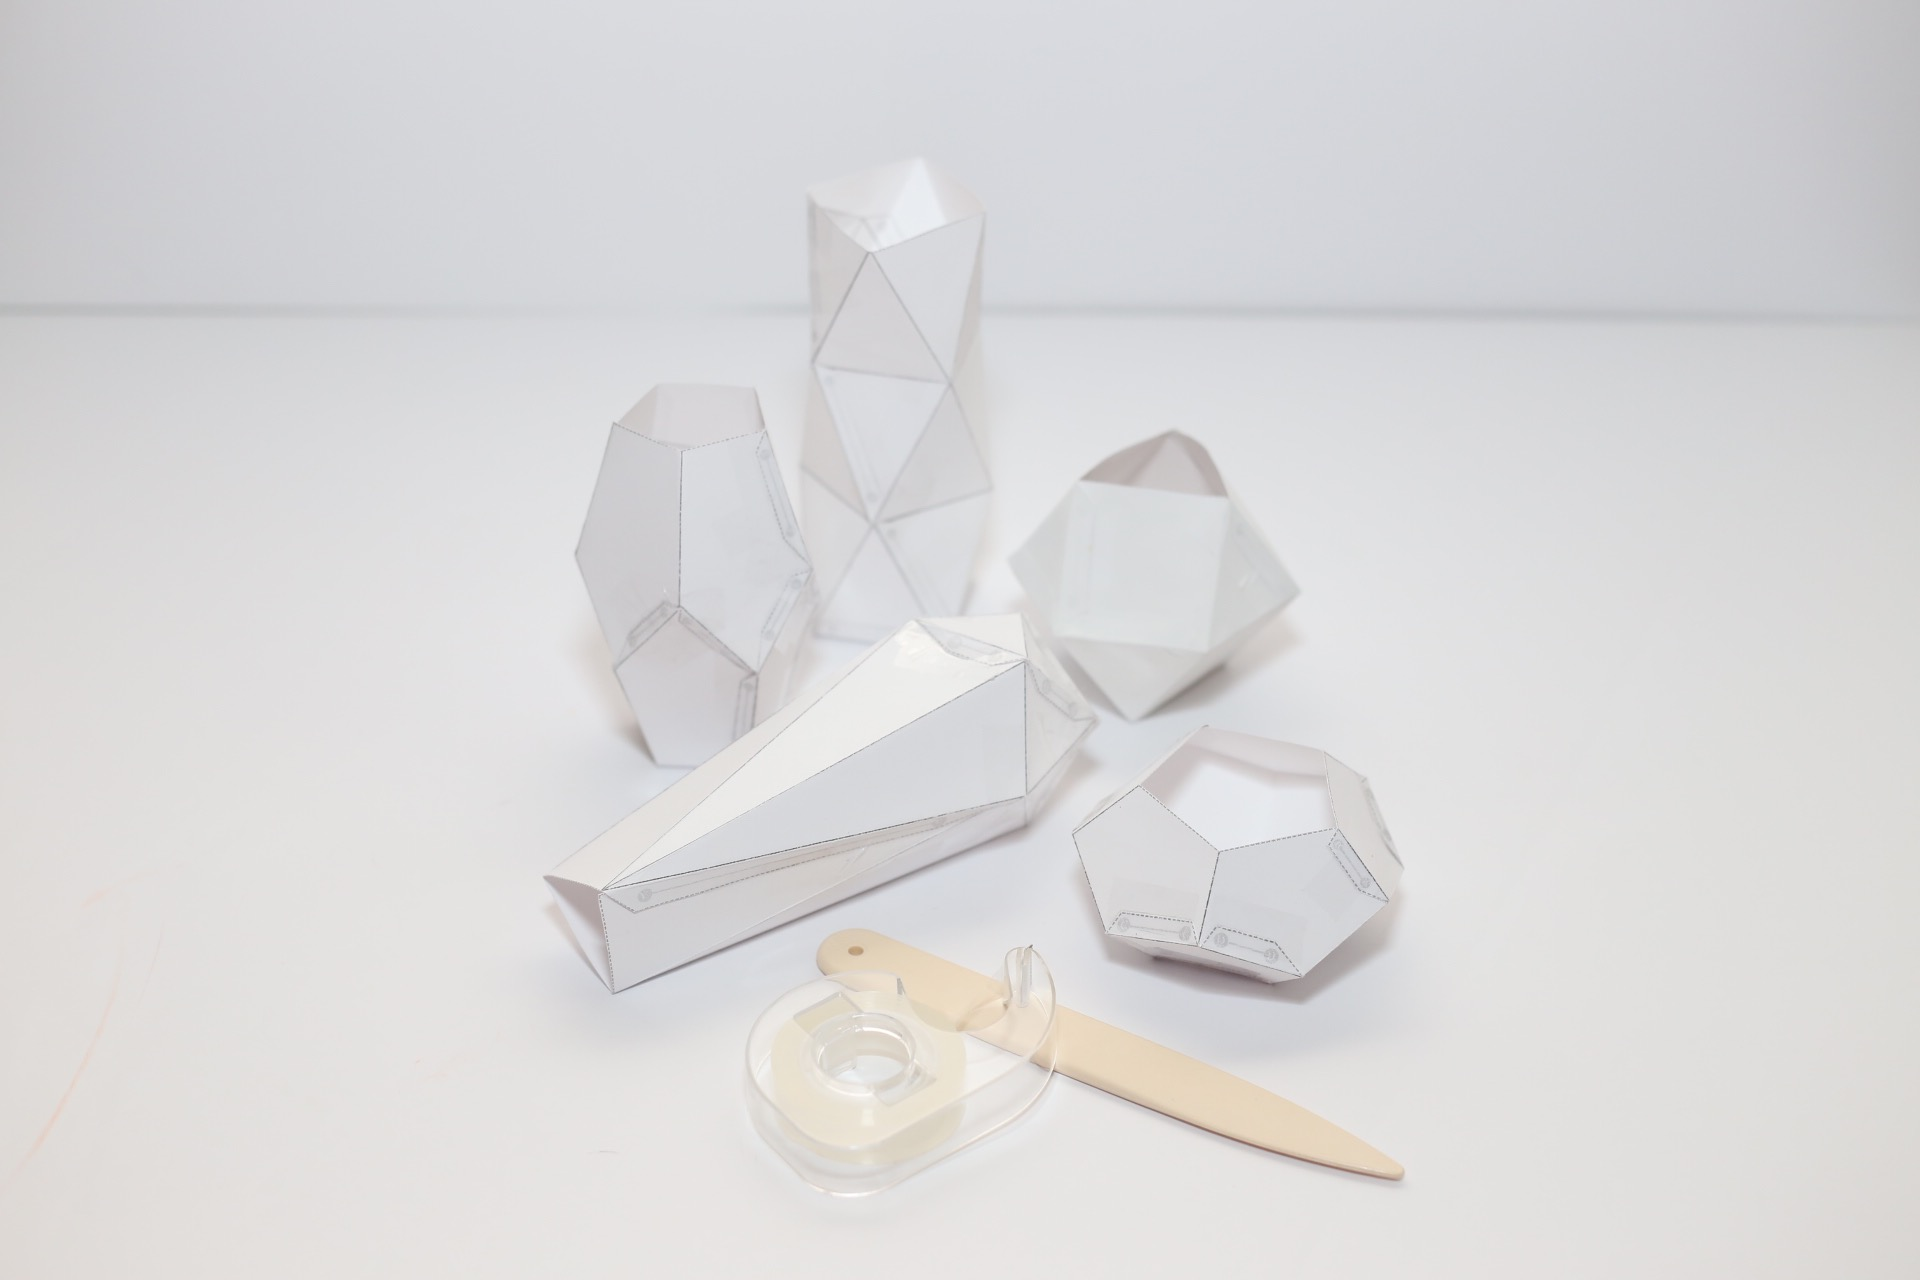 all the finished geometric paper templates diy tutorial